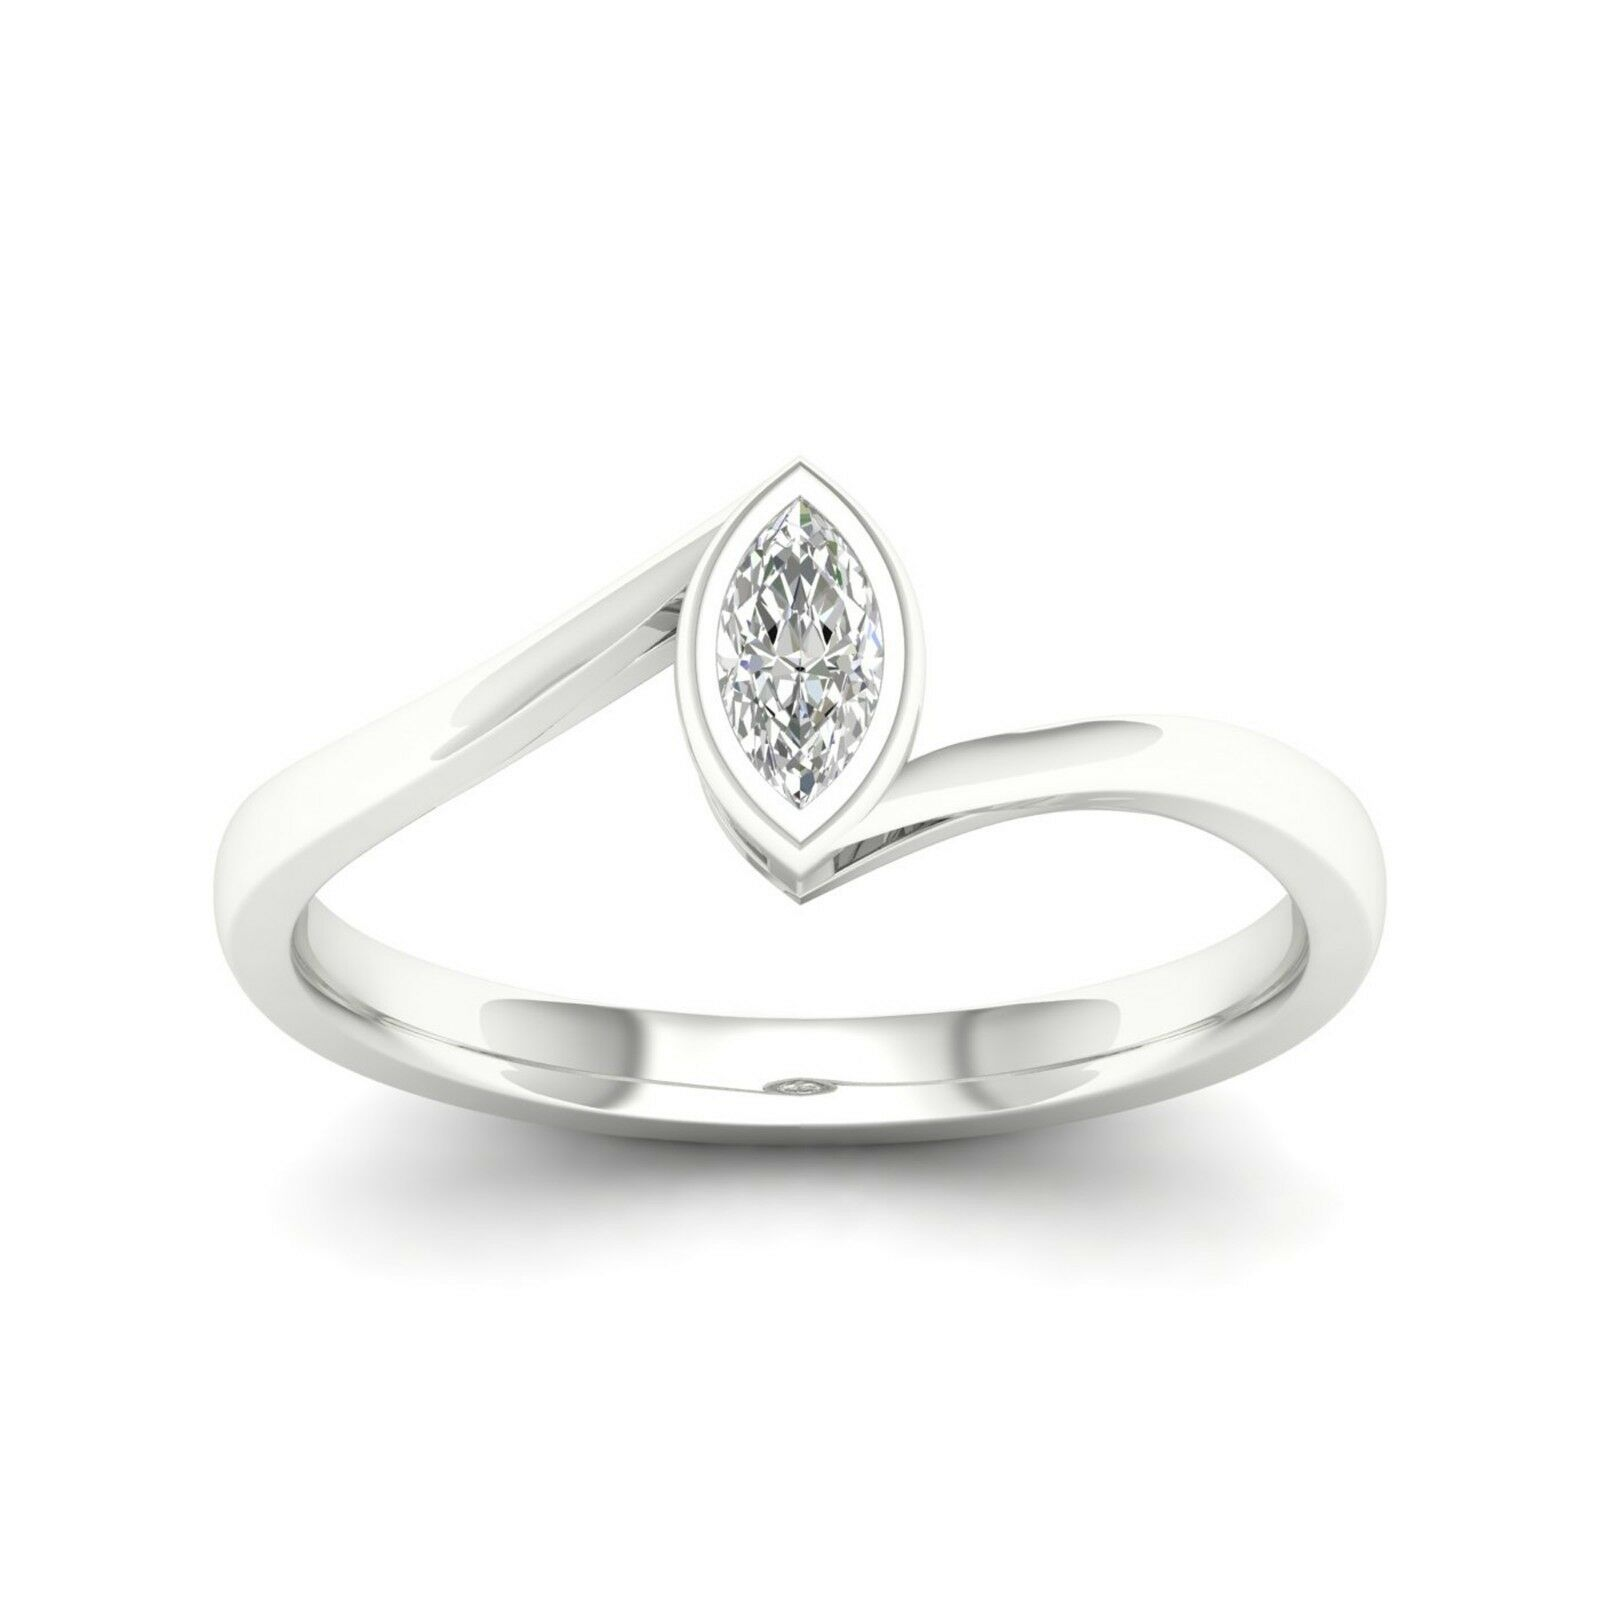 10k gold 0.20Ct TDW Marquise Diamond Solitaire Promise Ring